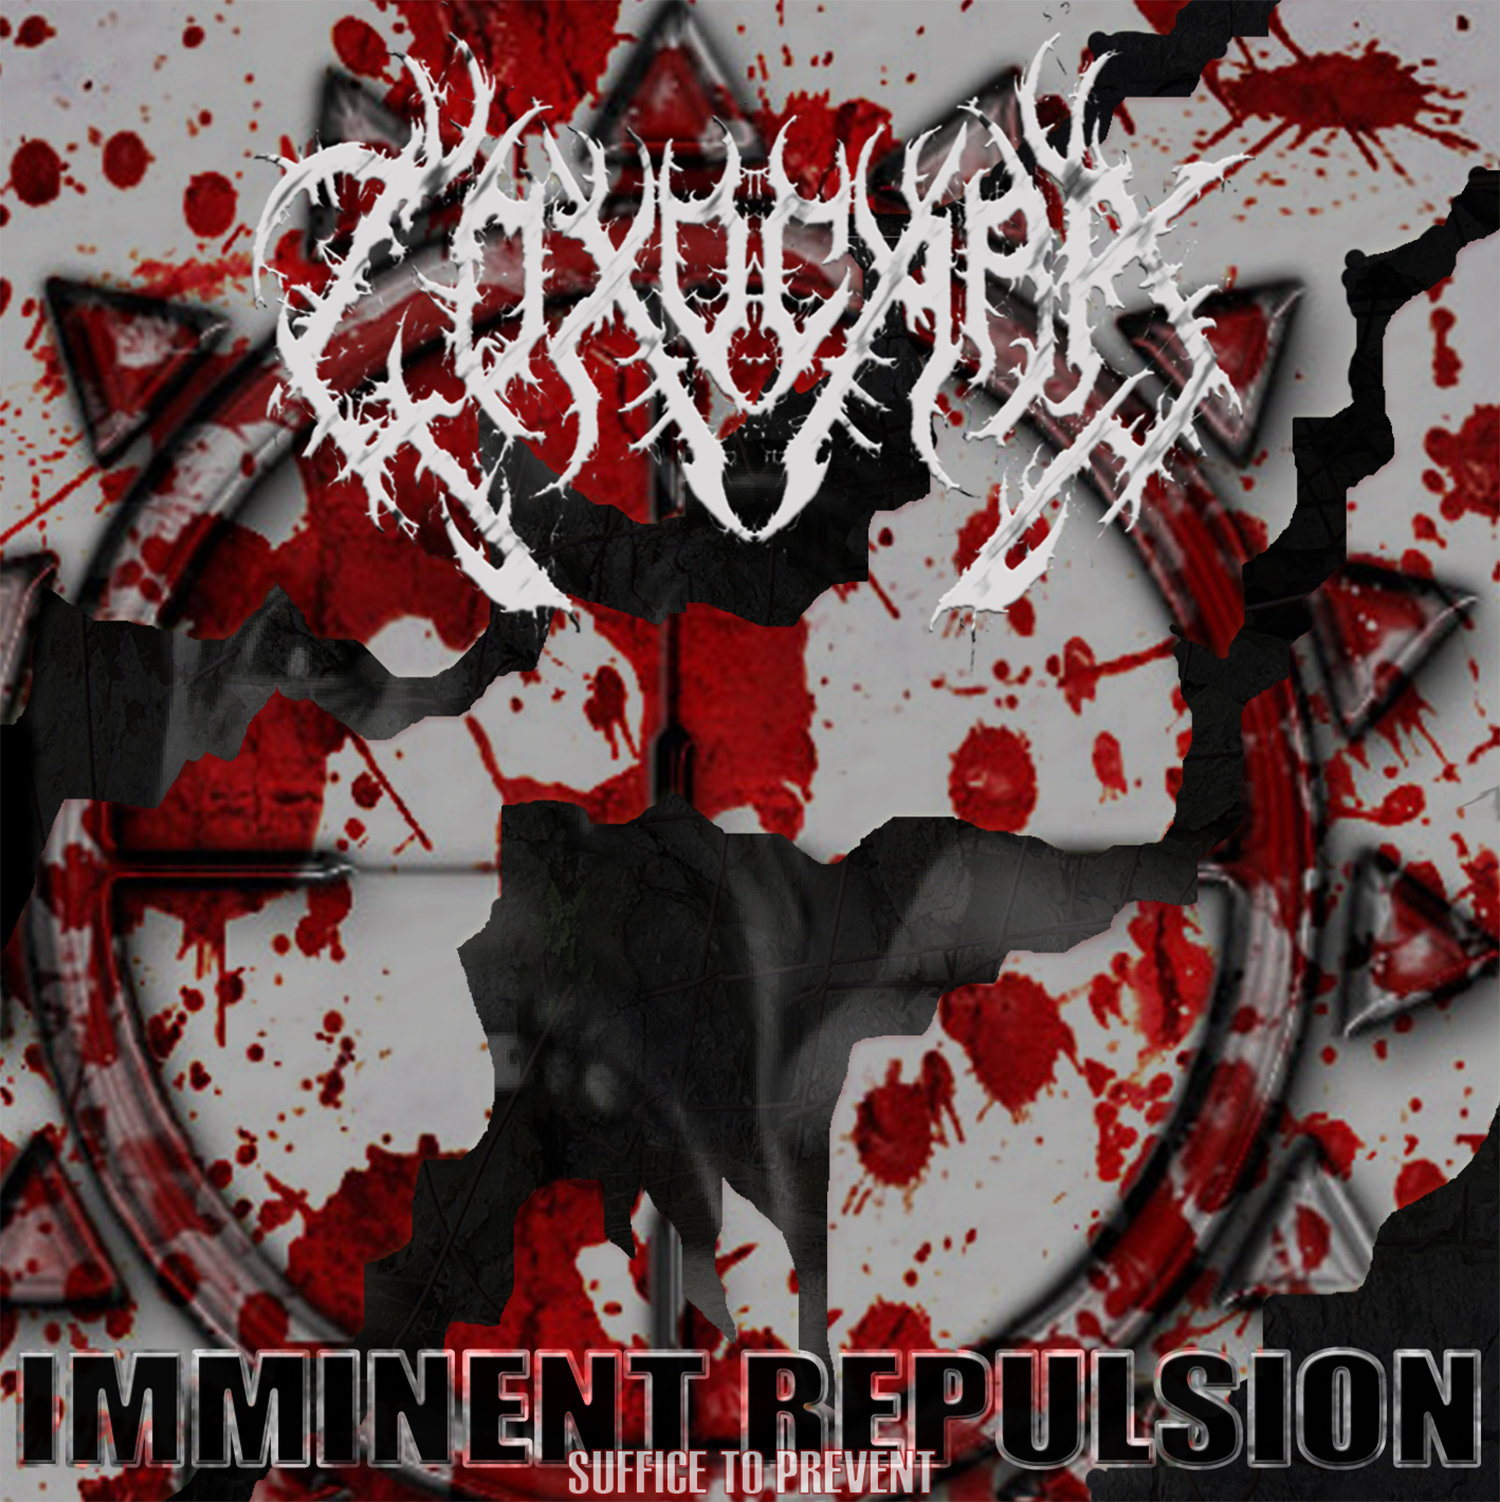 TOXOCARA - Imminent Repulsion (Suffice To Prevent) SOLD OUT 00006